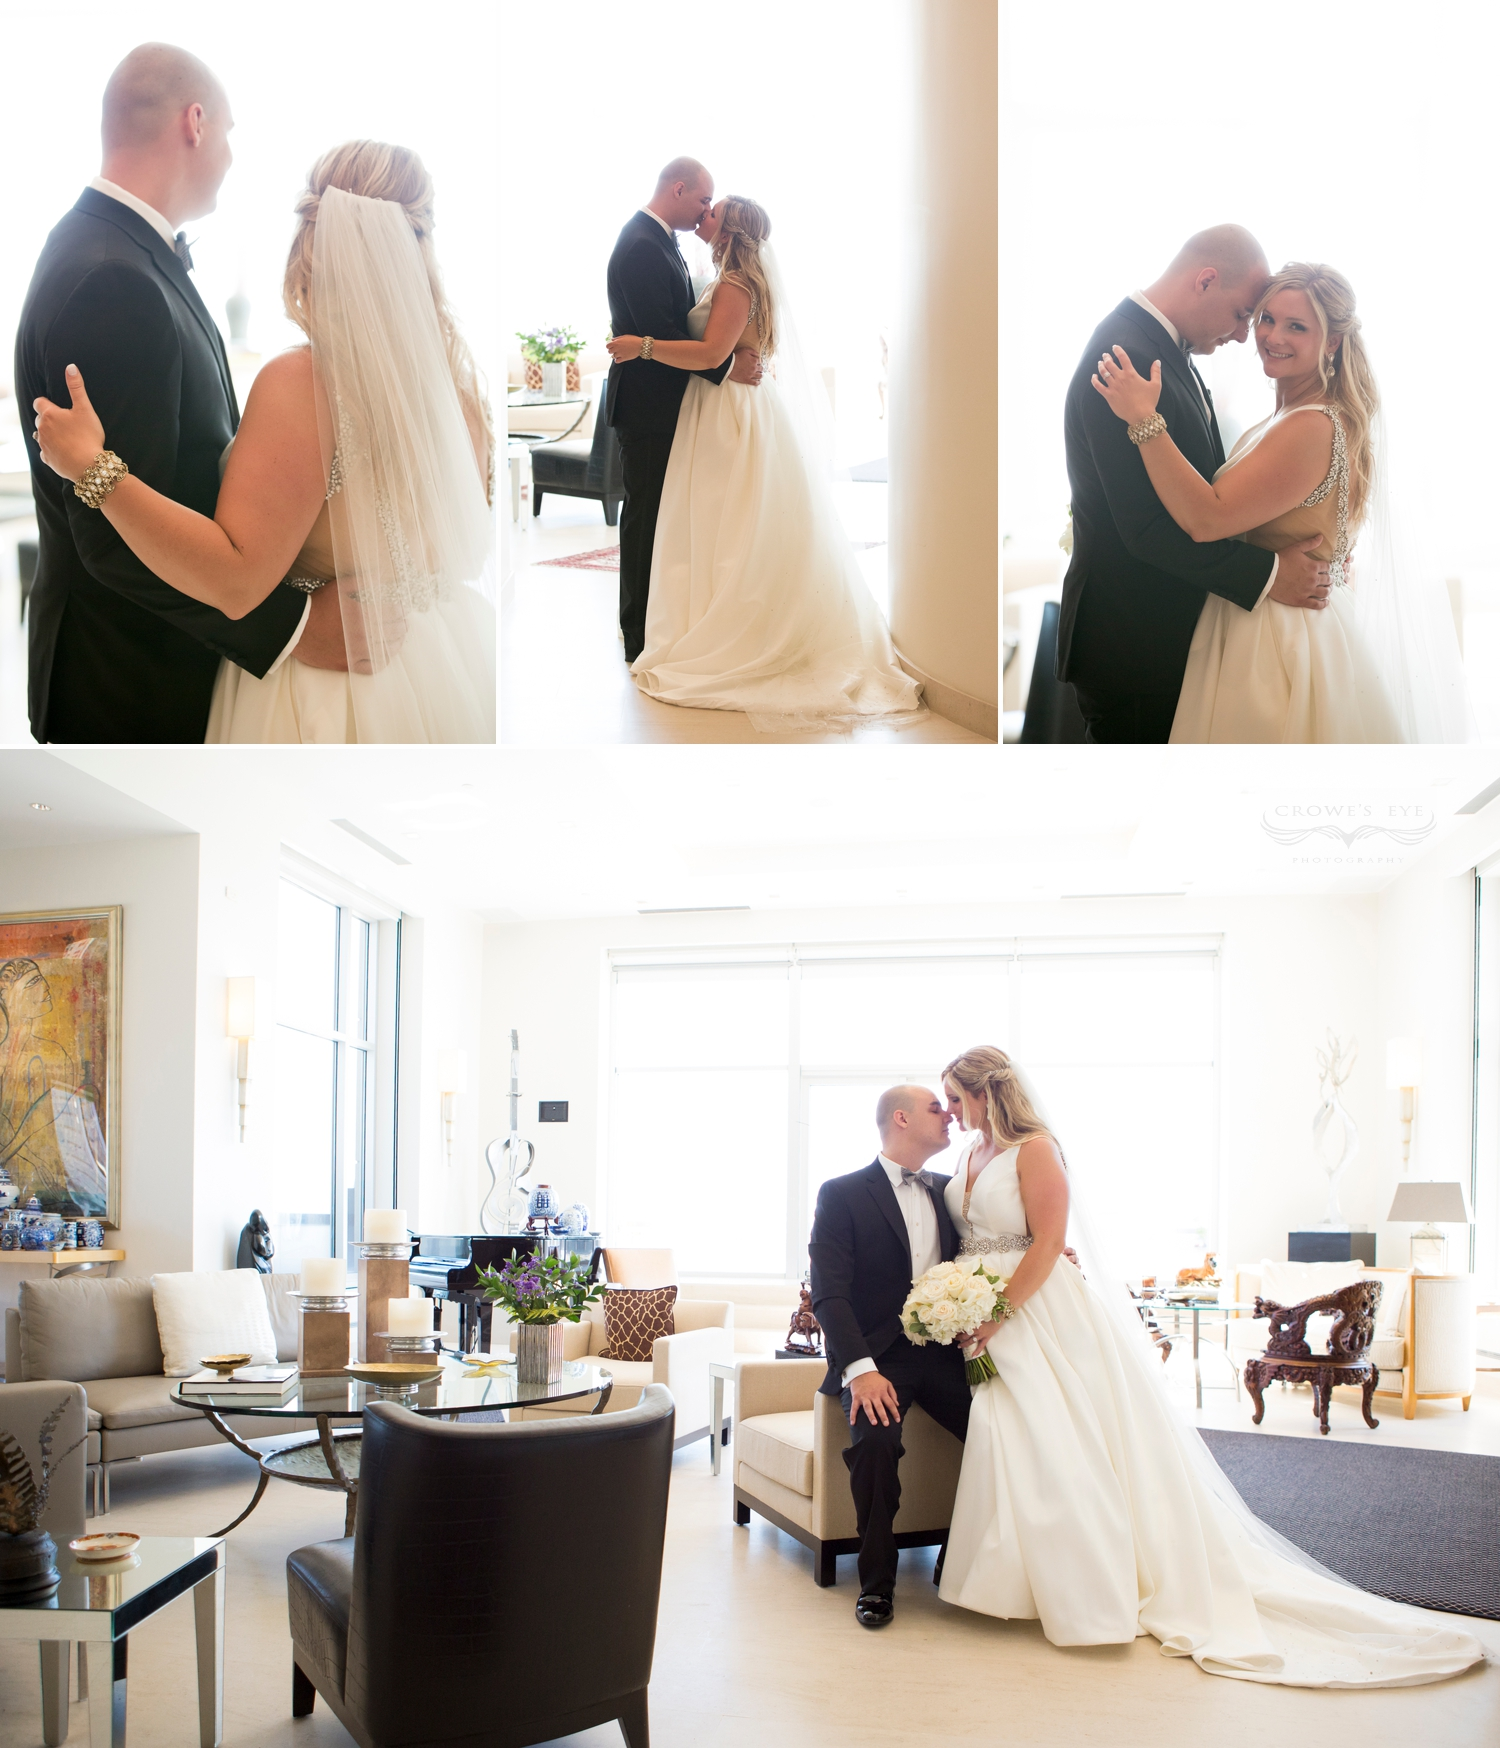 penthouse-conrad-hotel-indy-wedding.jpg